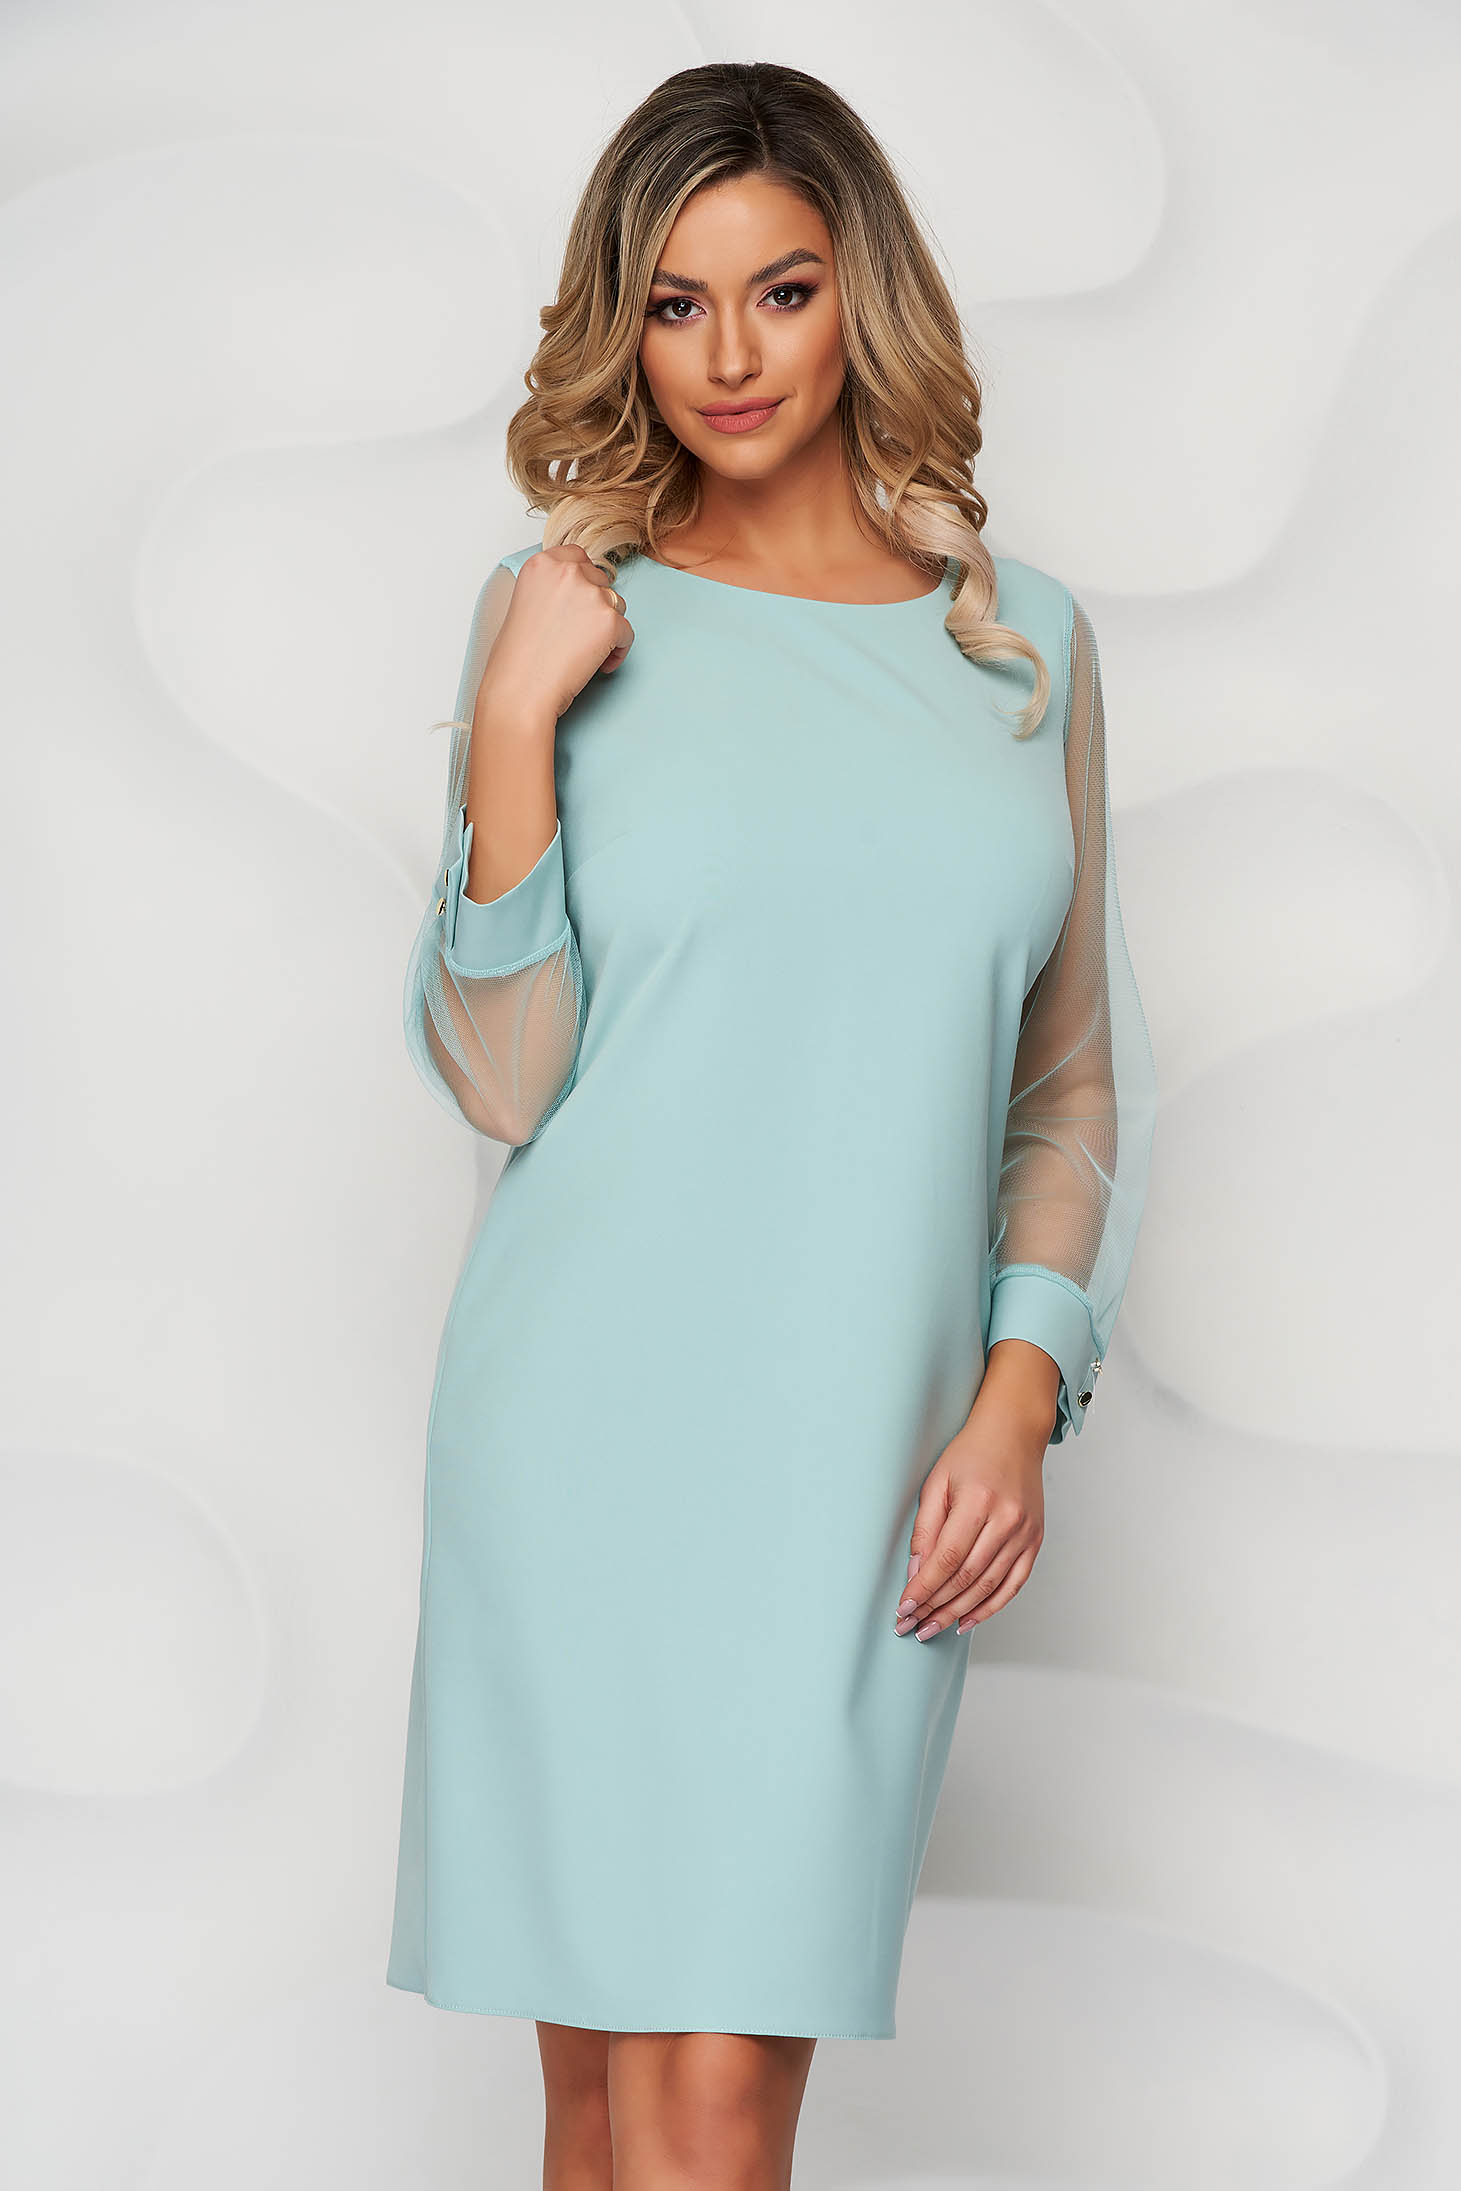 Mint dress transparent sleeves with puffed sleeves straight from elastic fabric